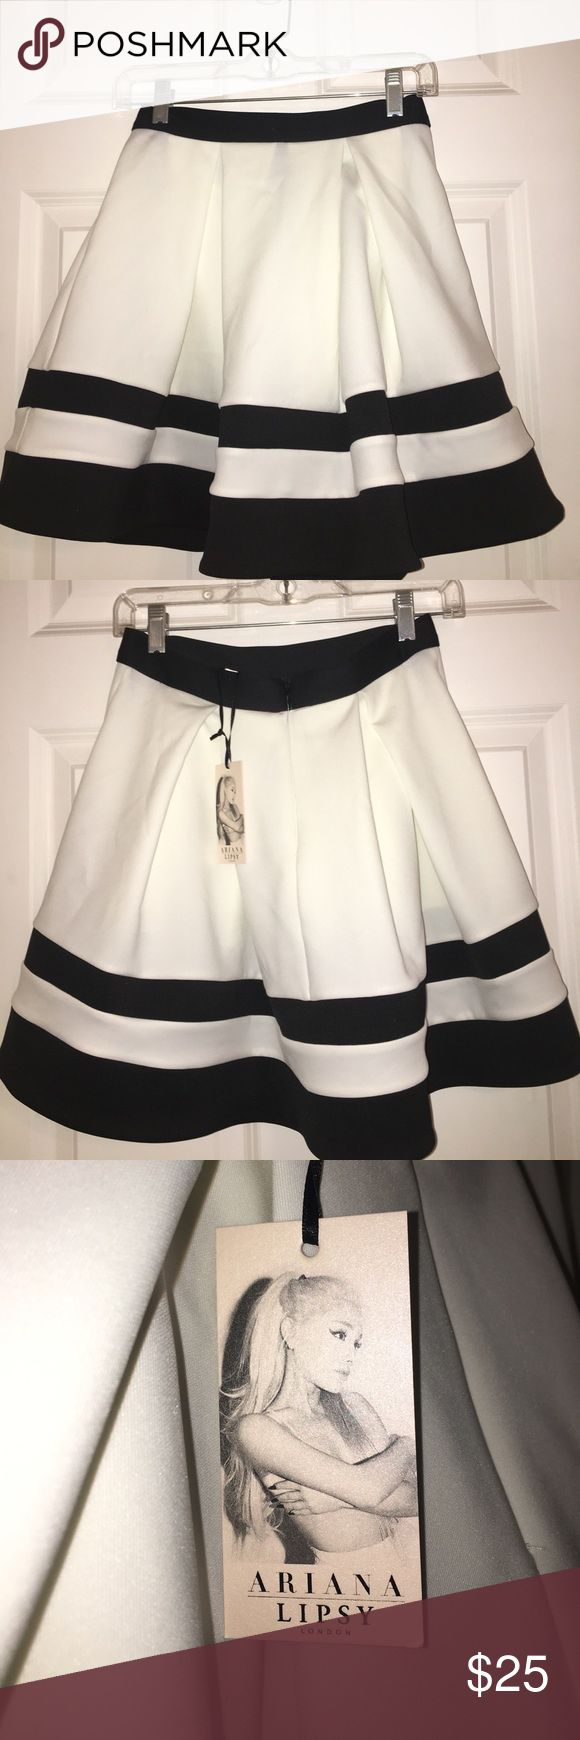 NWT ARIANA GRANDE LIPSY ♡ BLACK AND WHITE SKIRT **RARE** This is a black and white skirt from the Ariana Grande Lipsy Collection! This is brand new with the tags and I'm open to offers! Ariana Grande Skirts Mini